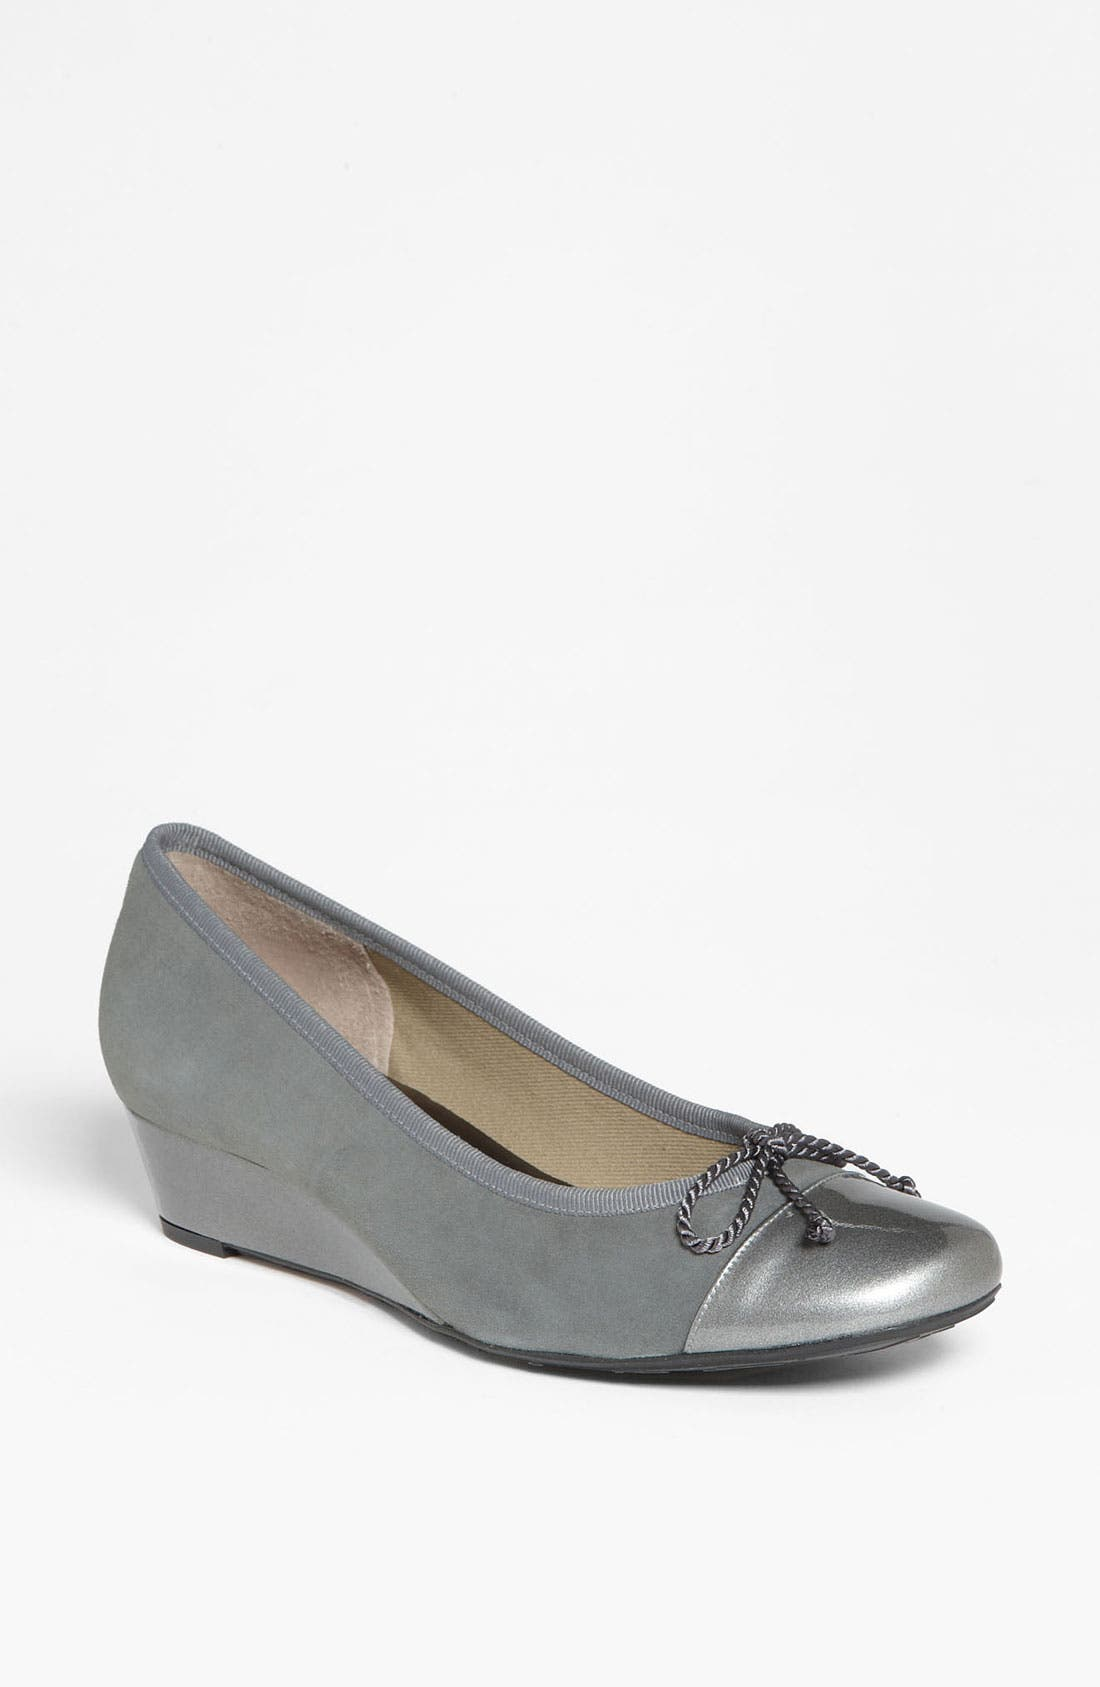 Alternate Image 1 Selected - French Sole 'Diverse' Wedge Pump